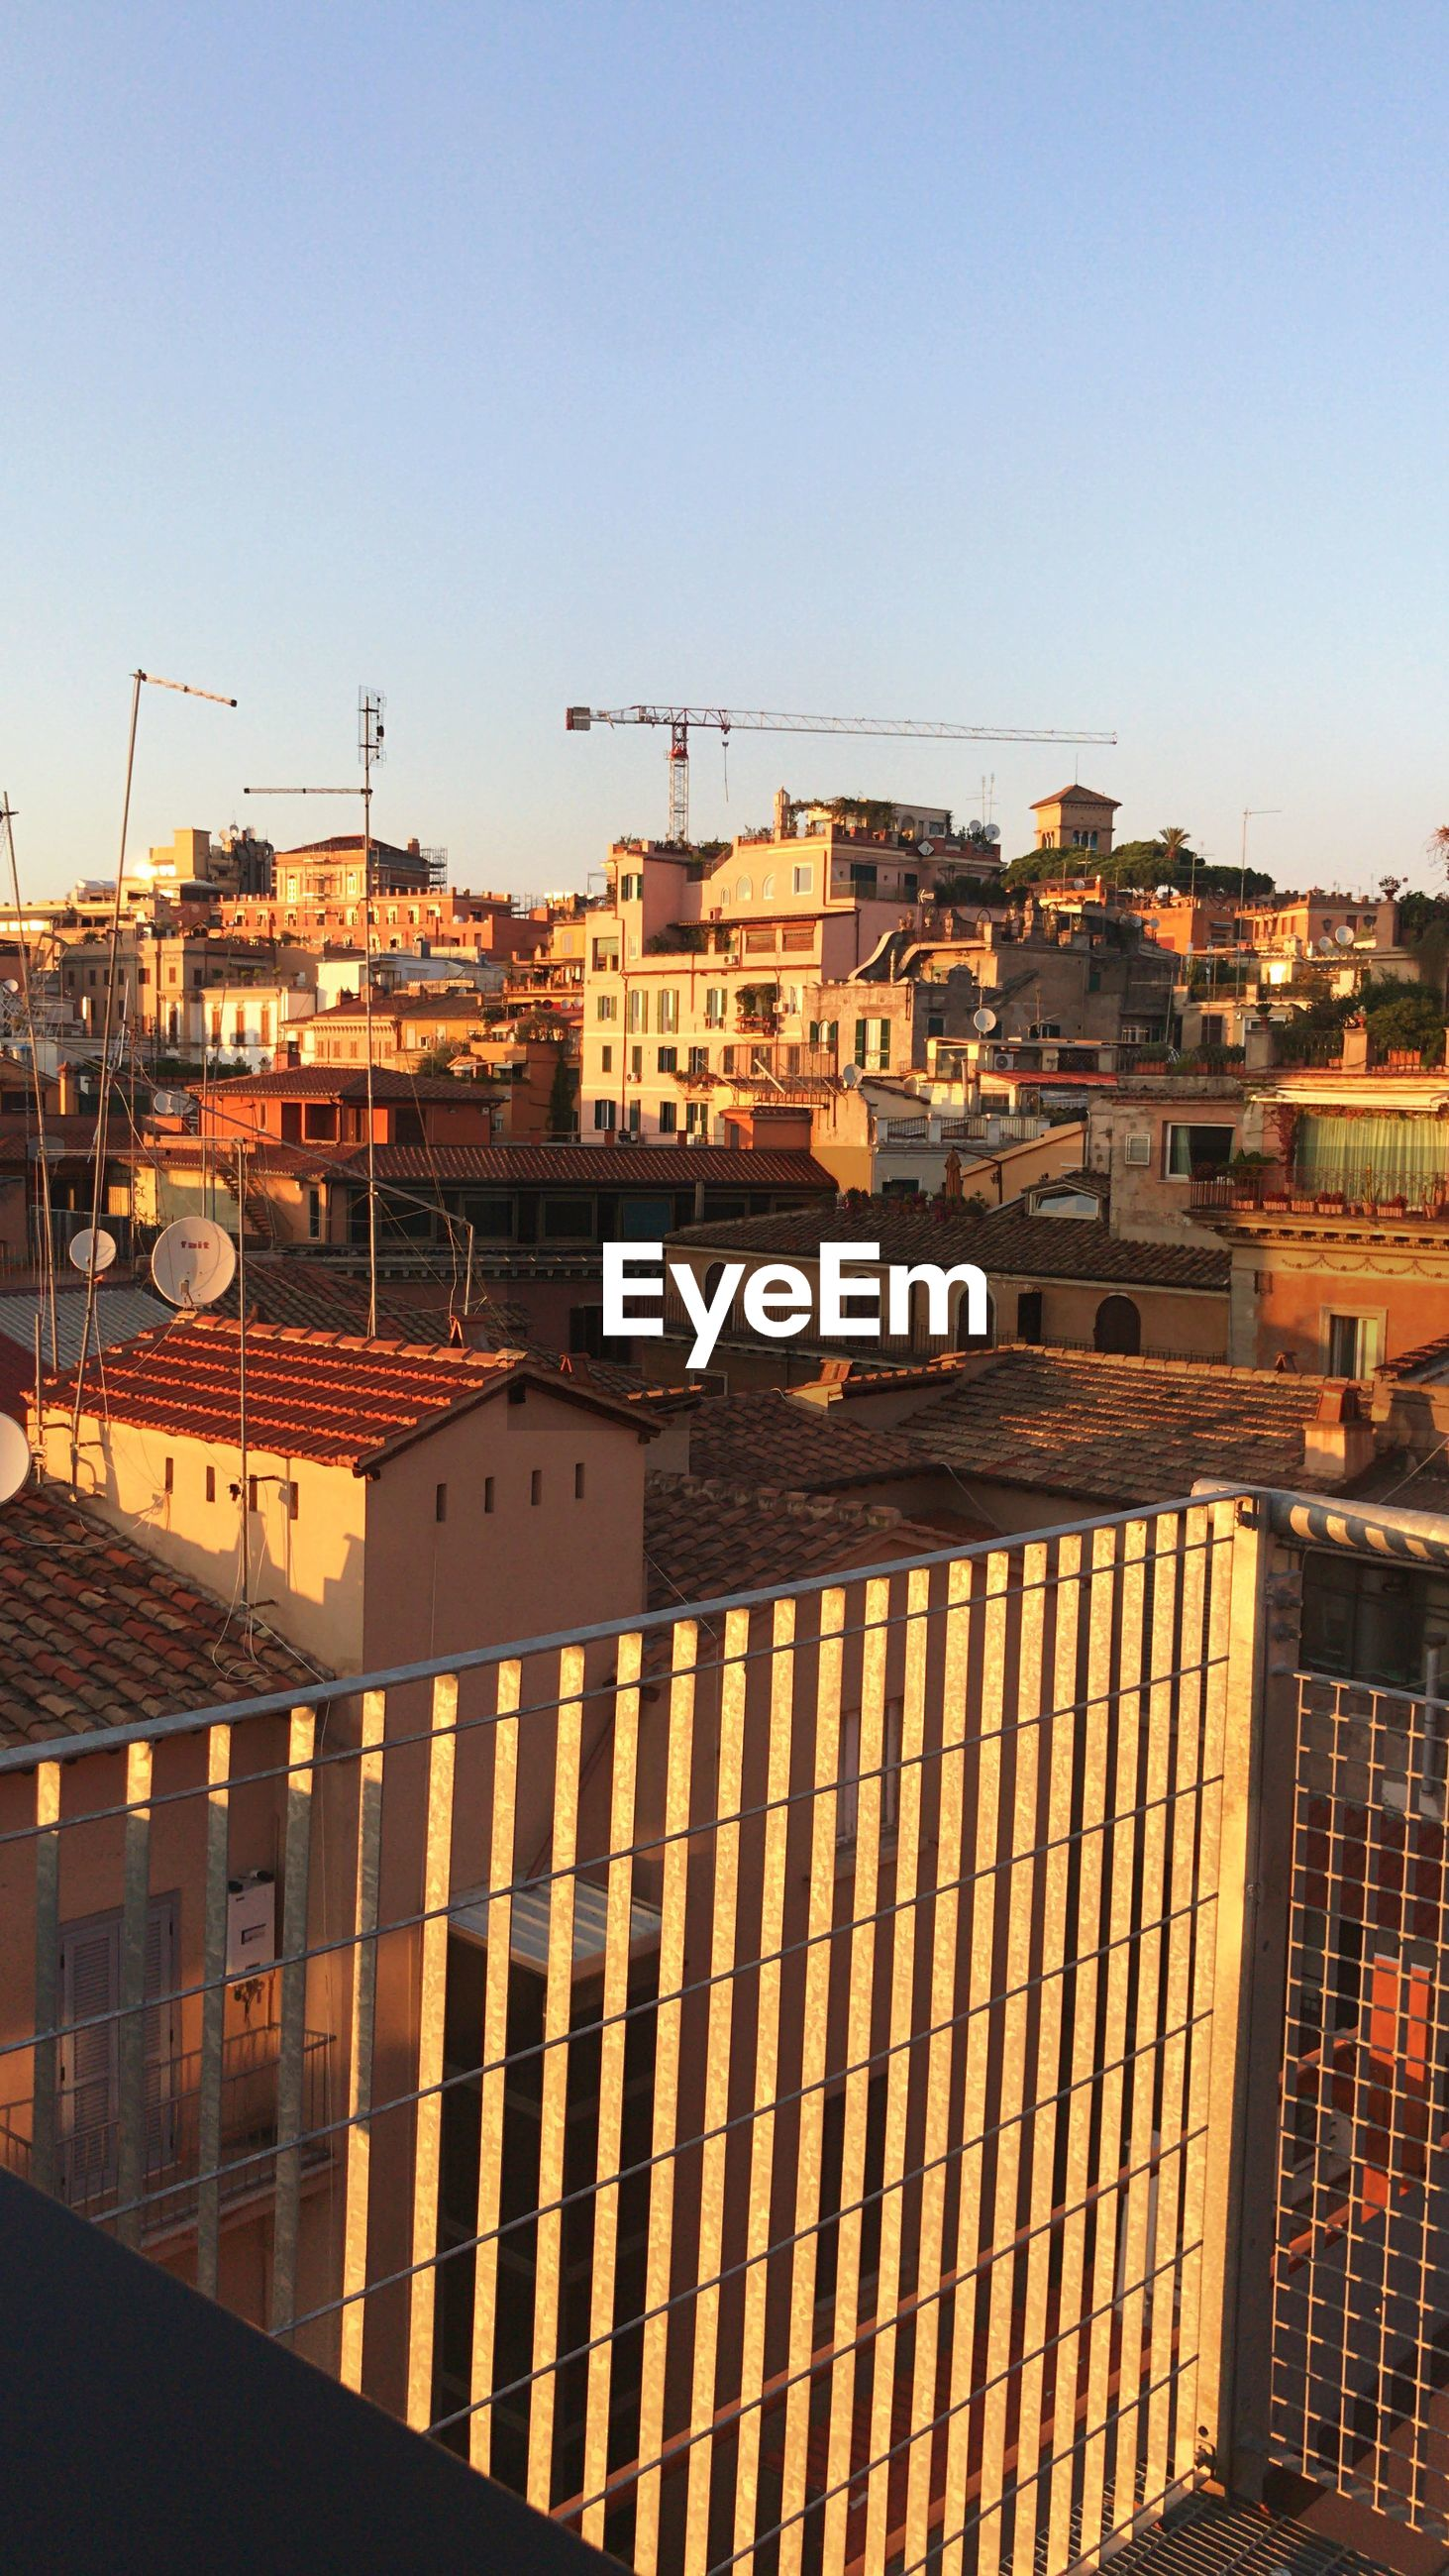 HIGH ANGLE SHOT OF BUILDINGS AGAINST CLEAR SKY